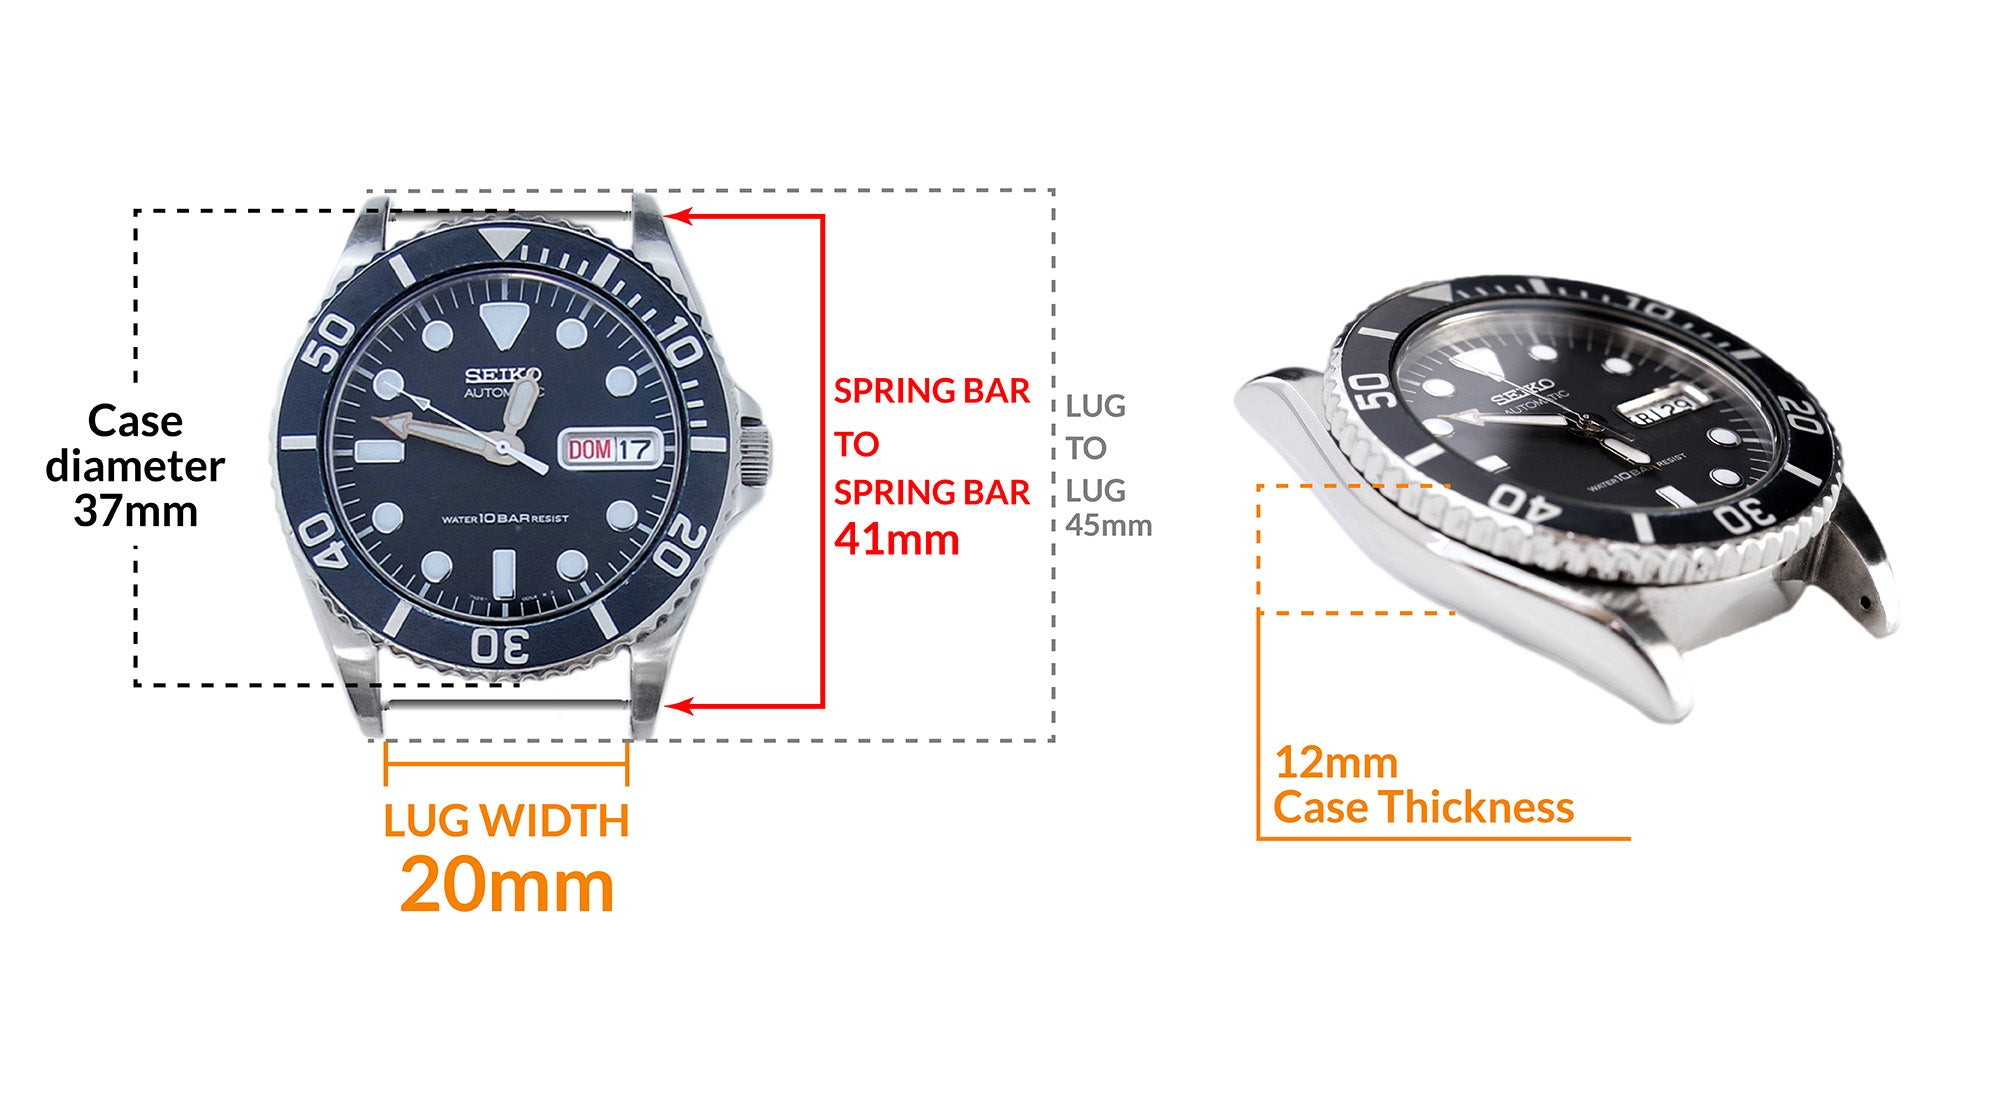 Seiko SKX023 Midsize Diver- Details Seiko watch size, Lug width and case dimensions